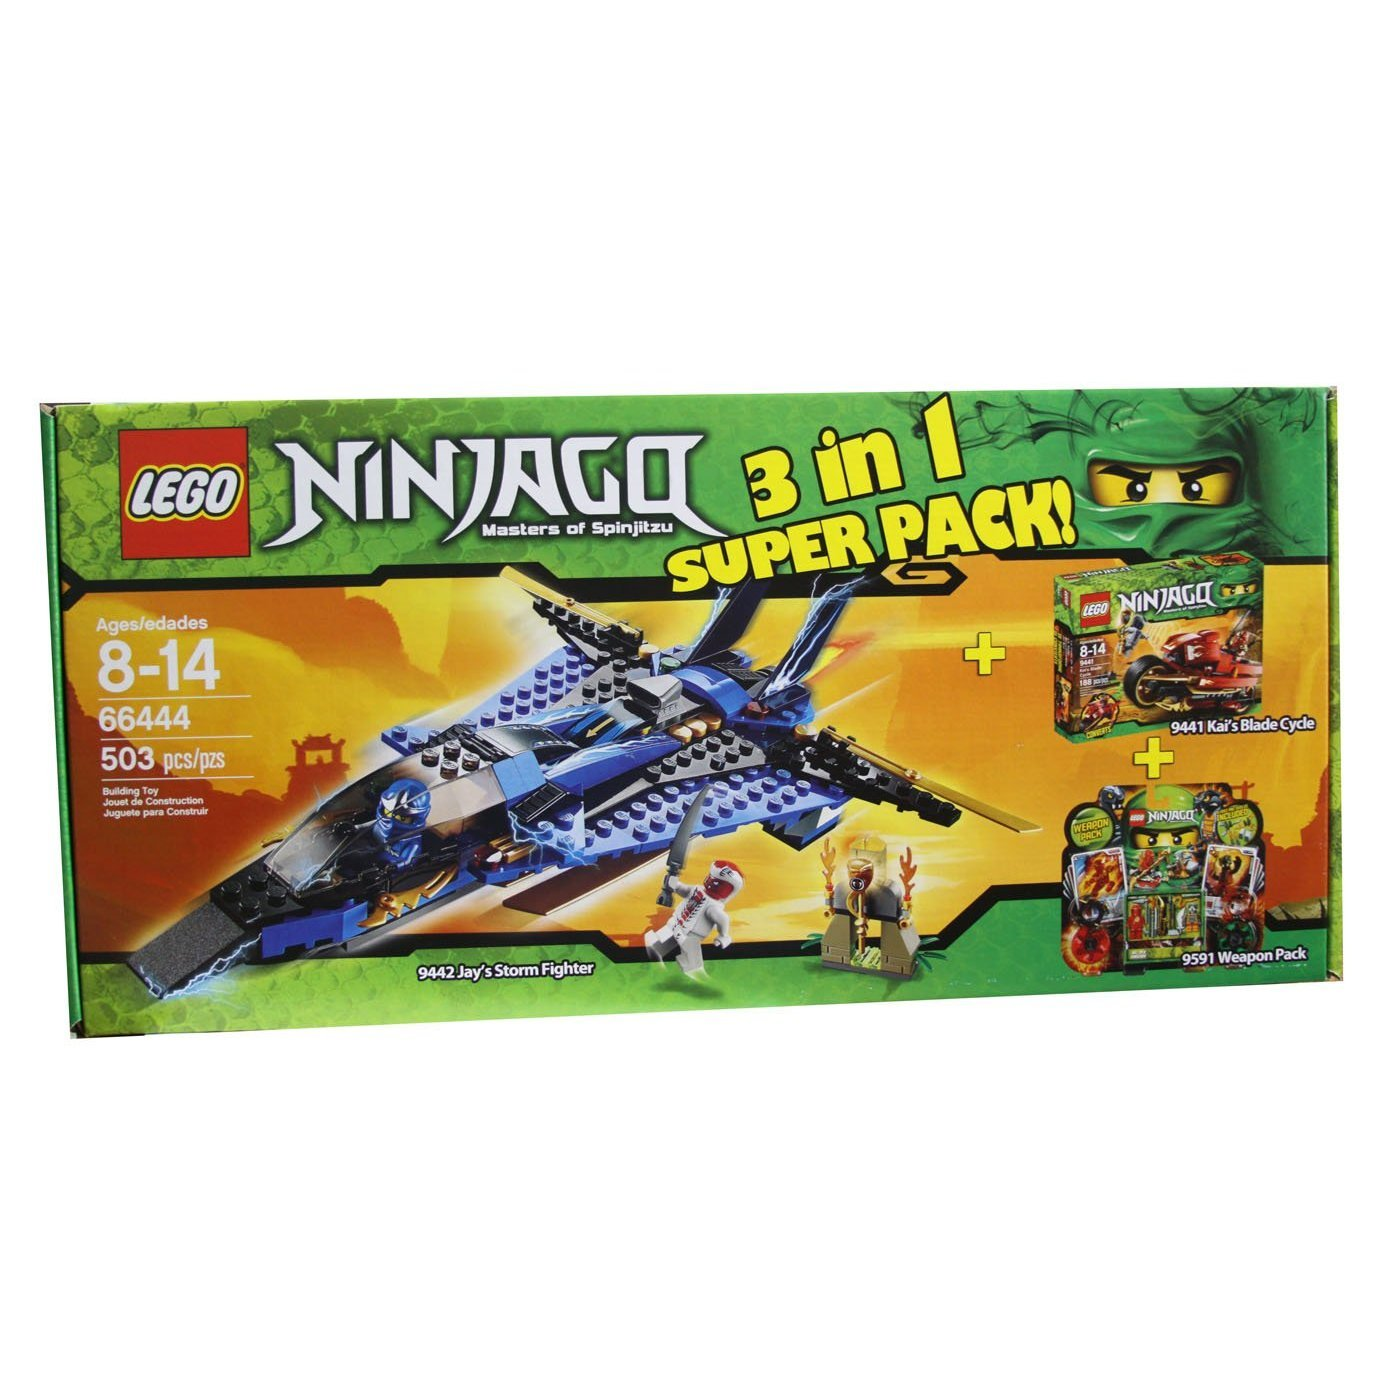 Lego Ninjago 66444 Masters of Spinjitzu 7.6cm 1 Super Pack contains 9442, 9441 and 9591